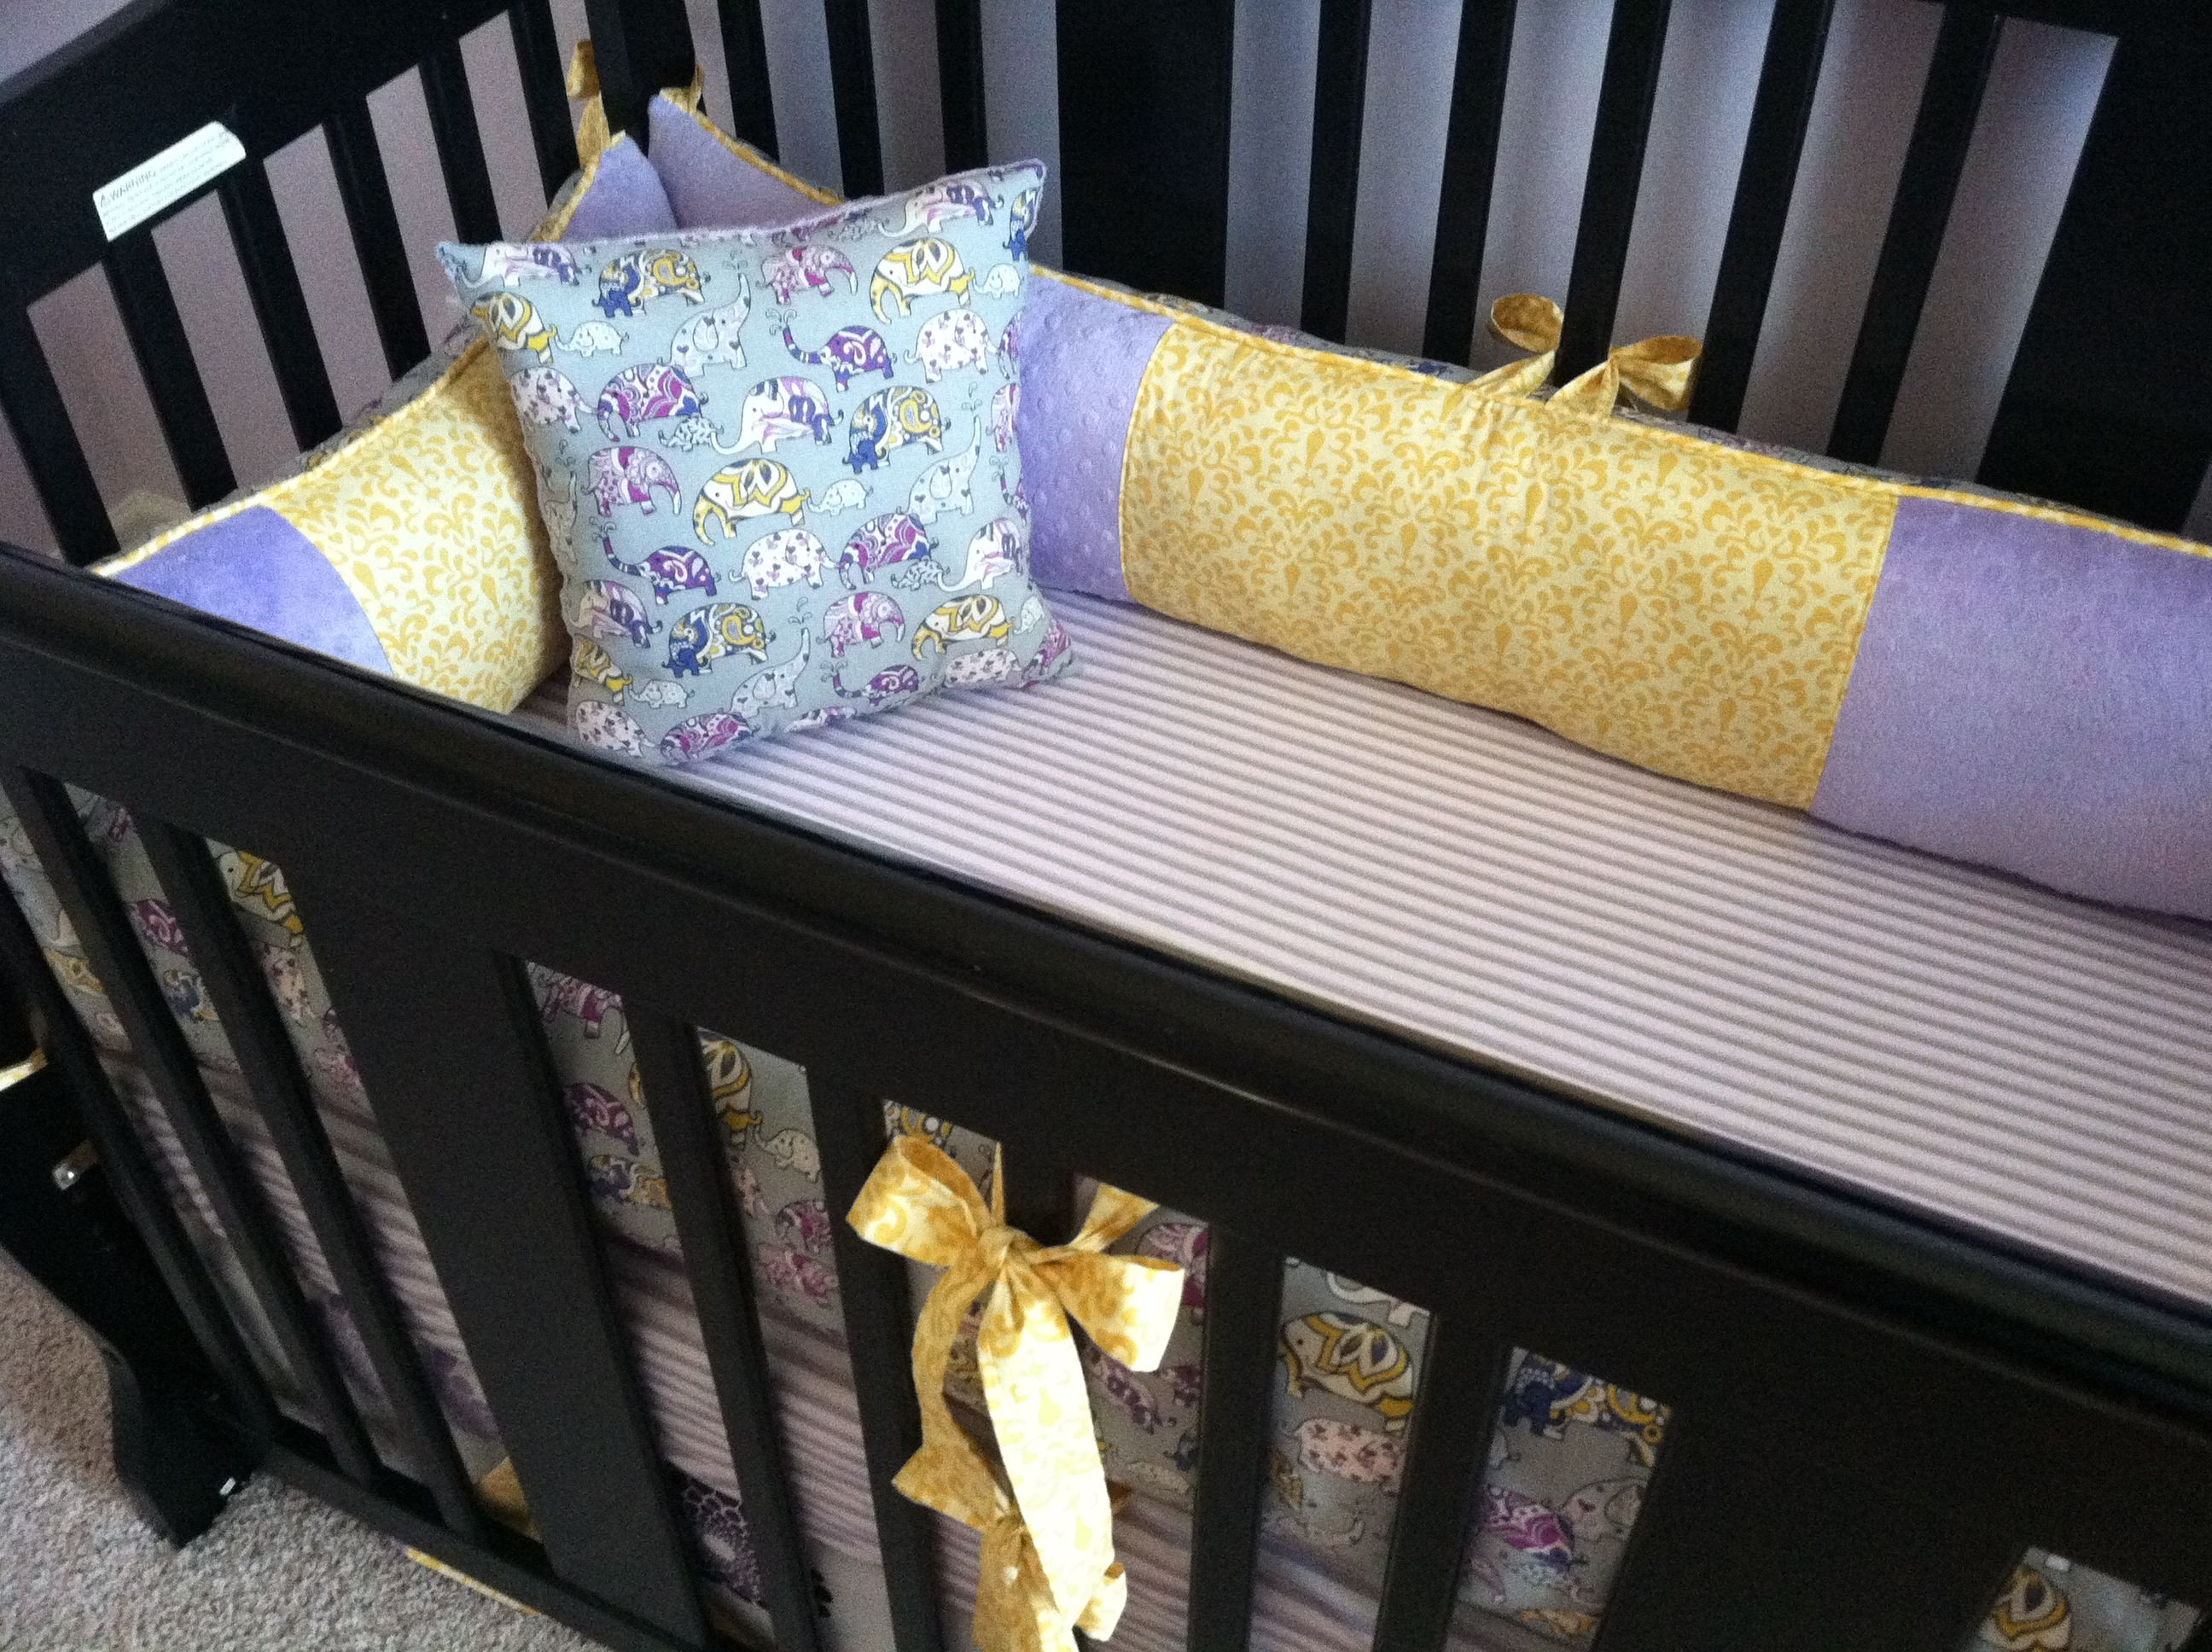 Purple elephant crib bedding custom made by Posh Petites Boutique. https://www.facebook.com/poshpetitesboutique lmb0828@hotmail.com